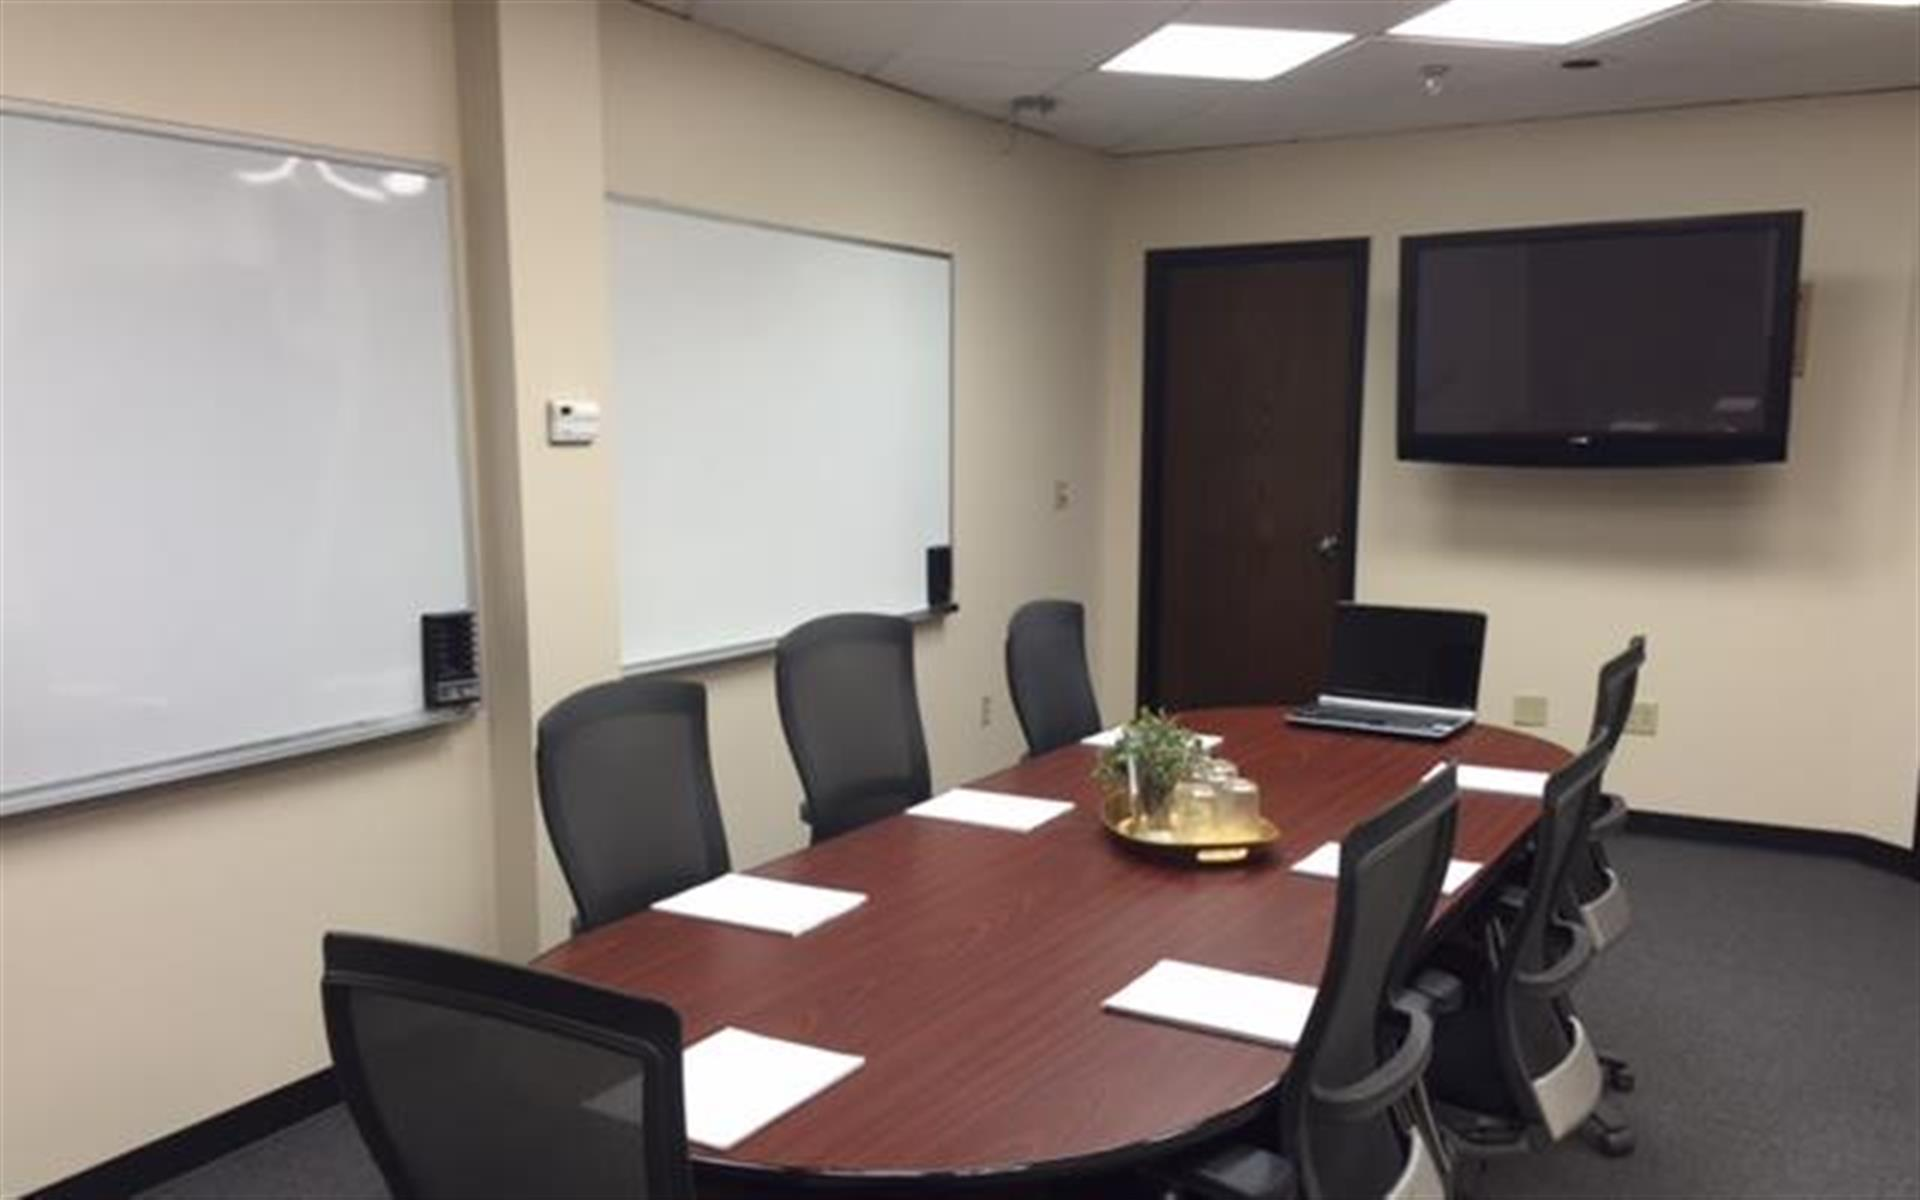 AMG Corporate Offices - Chesterfield - Break Room Conference Room